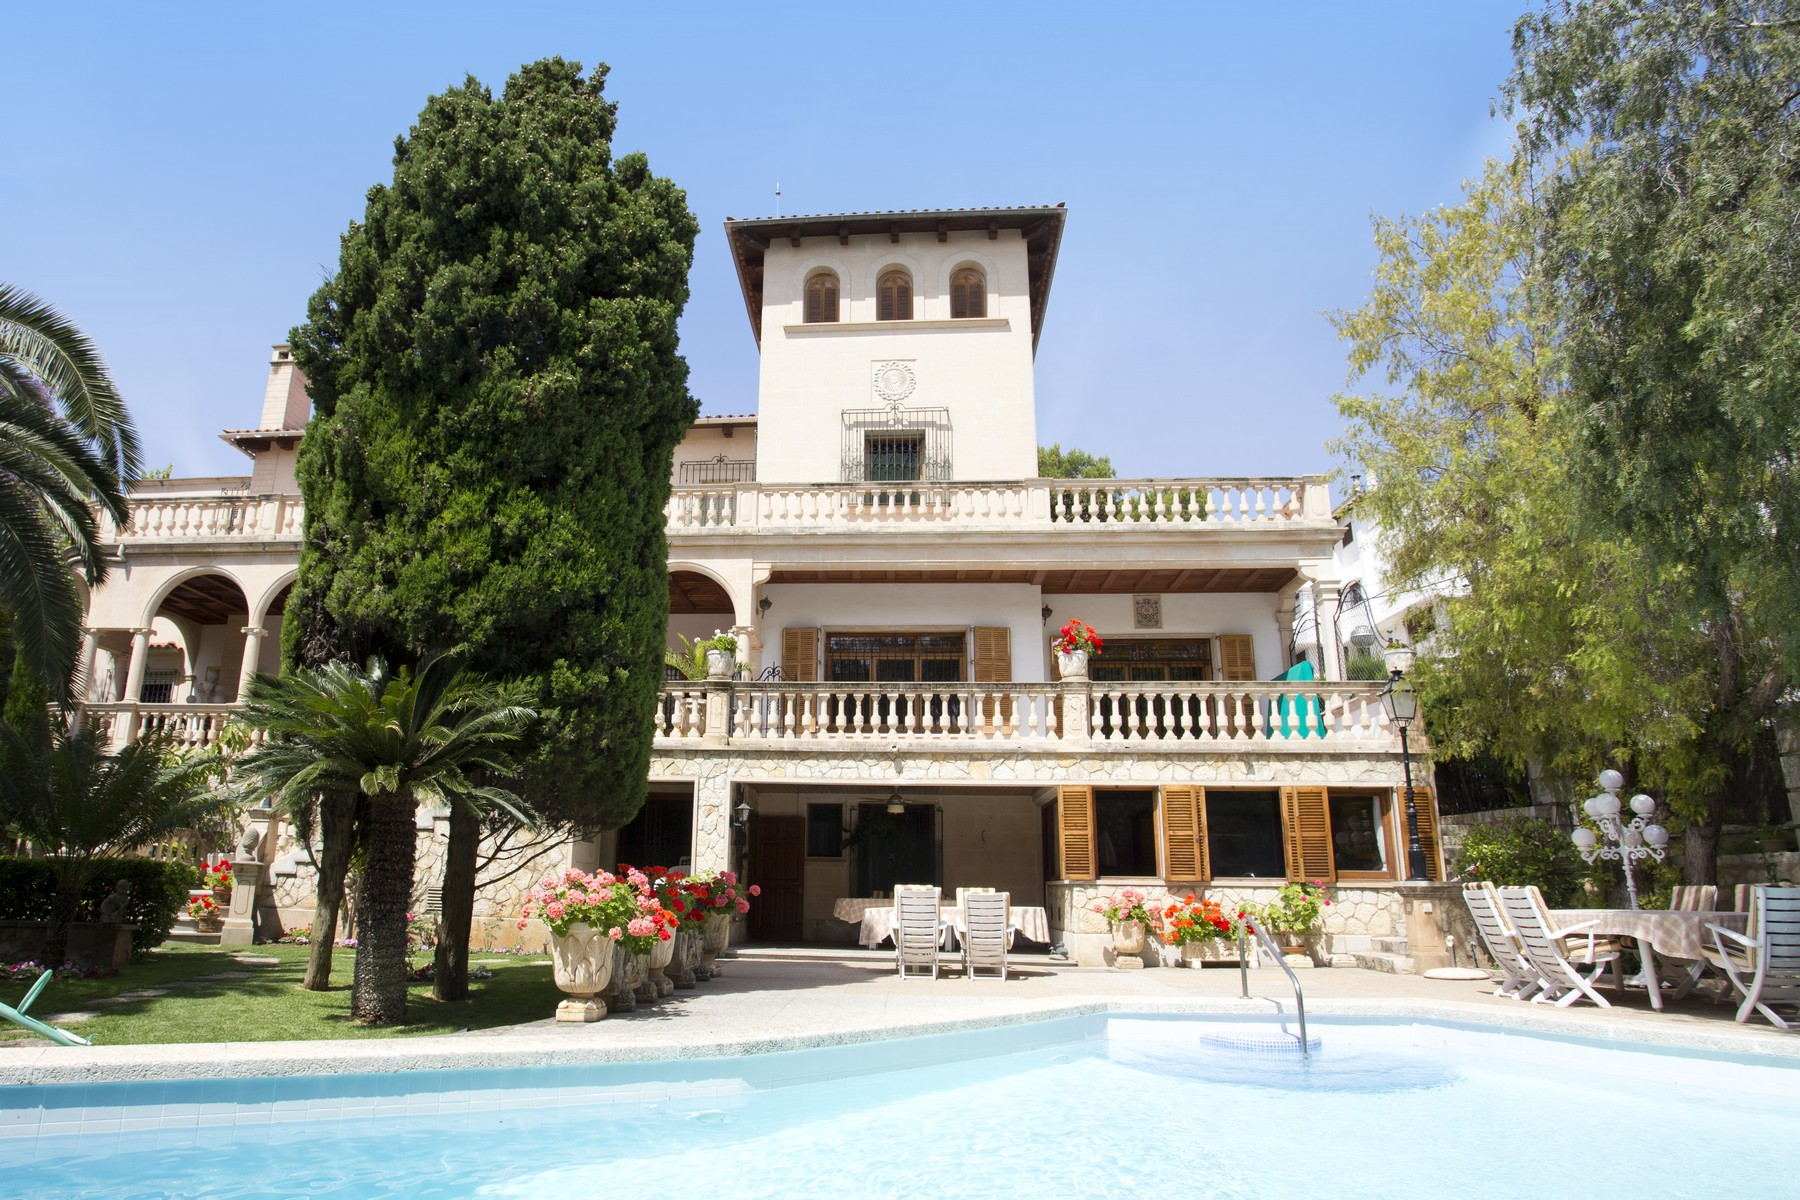 Single Family Home for Sale at Manor House in Palma Palma De Mallorca, Balearic Islands, 07001 Spain